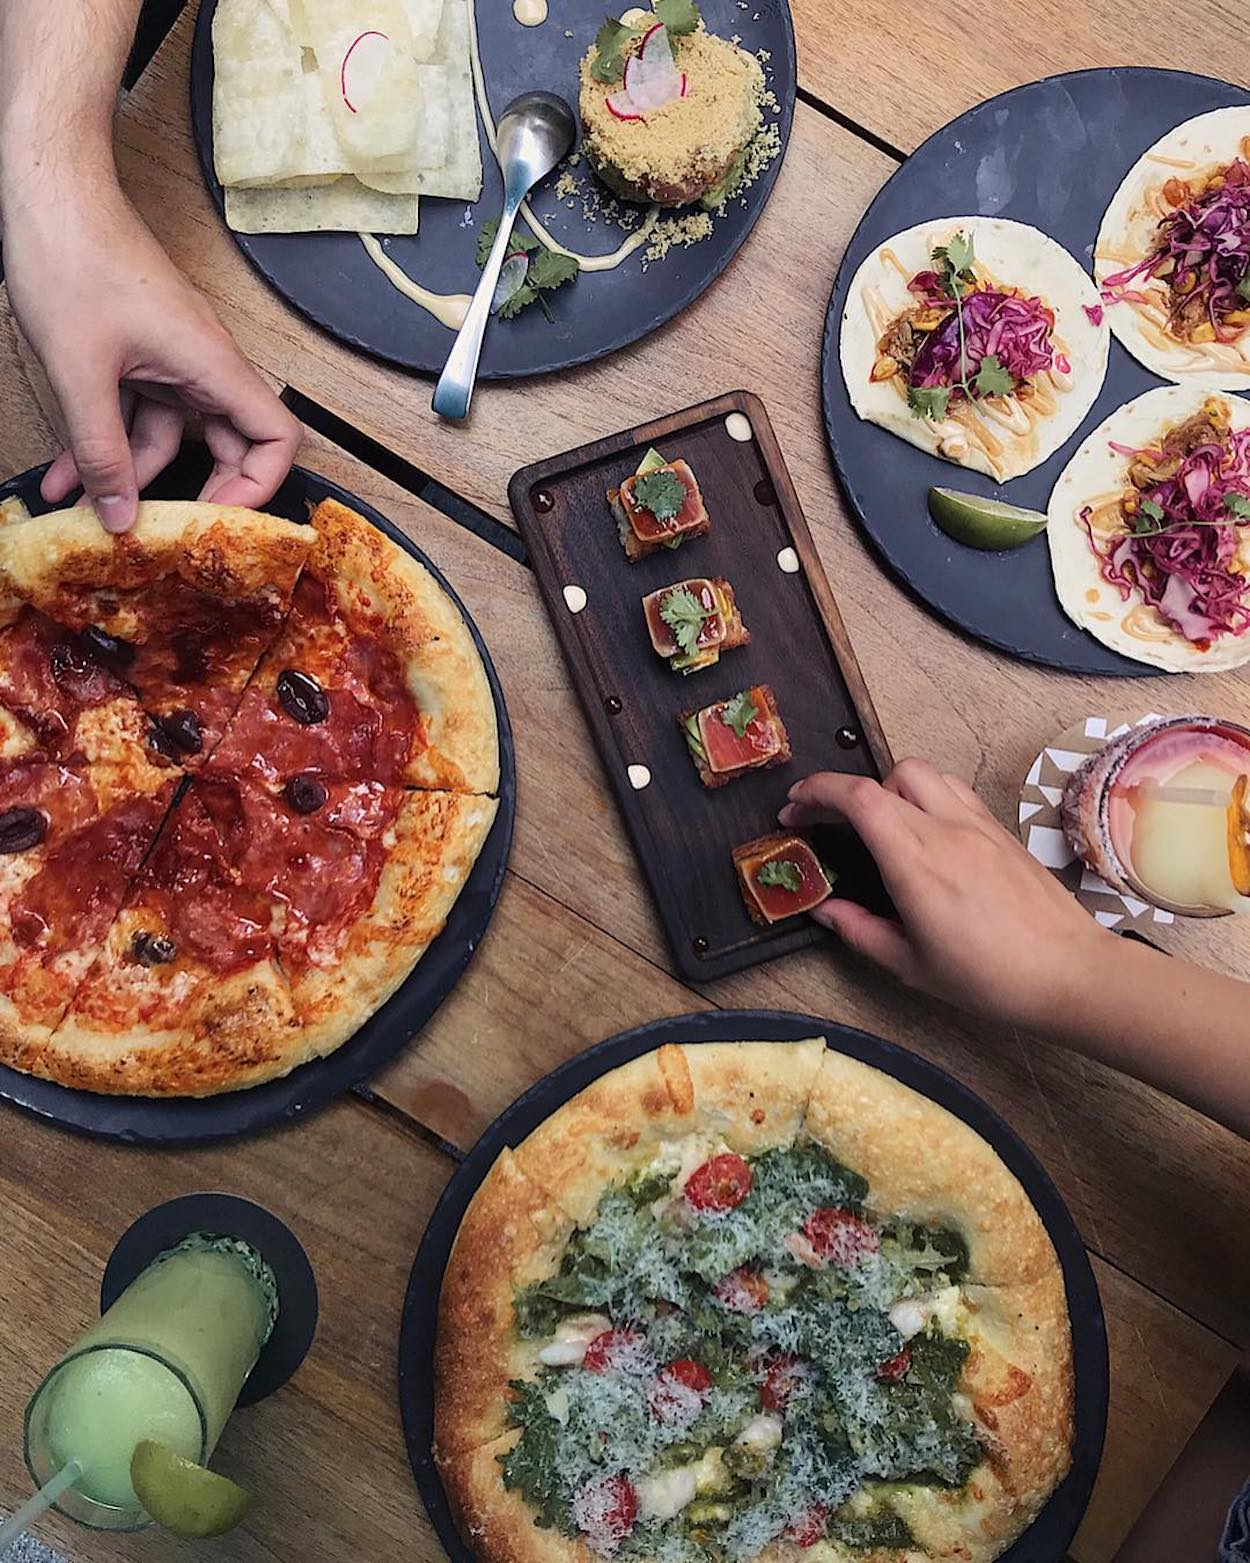 Pizza and appetizers at King Taps Restaurant in Toronto